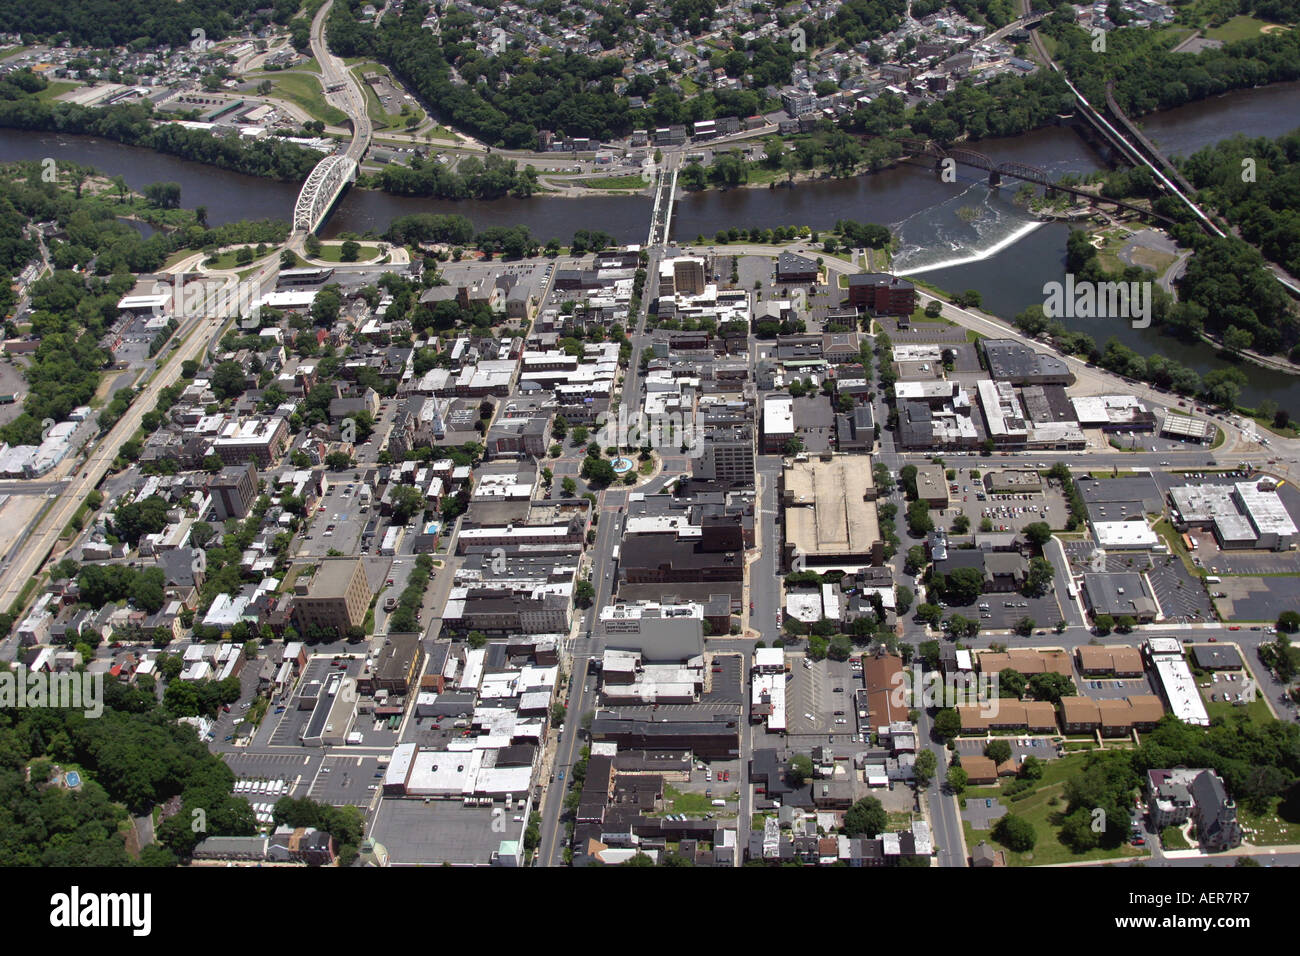 Aerial view of the City of Easton, located on the banks of the Stock